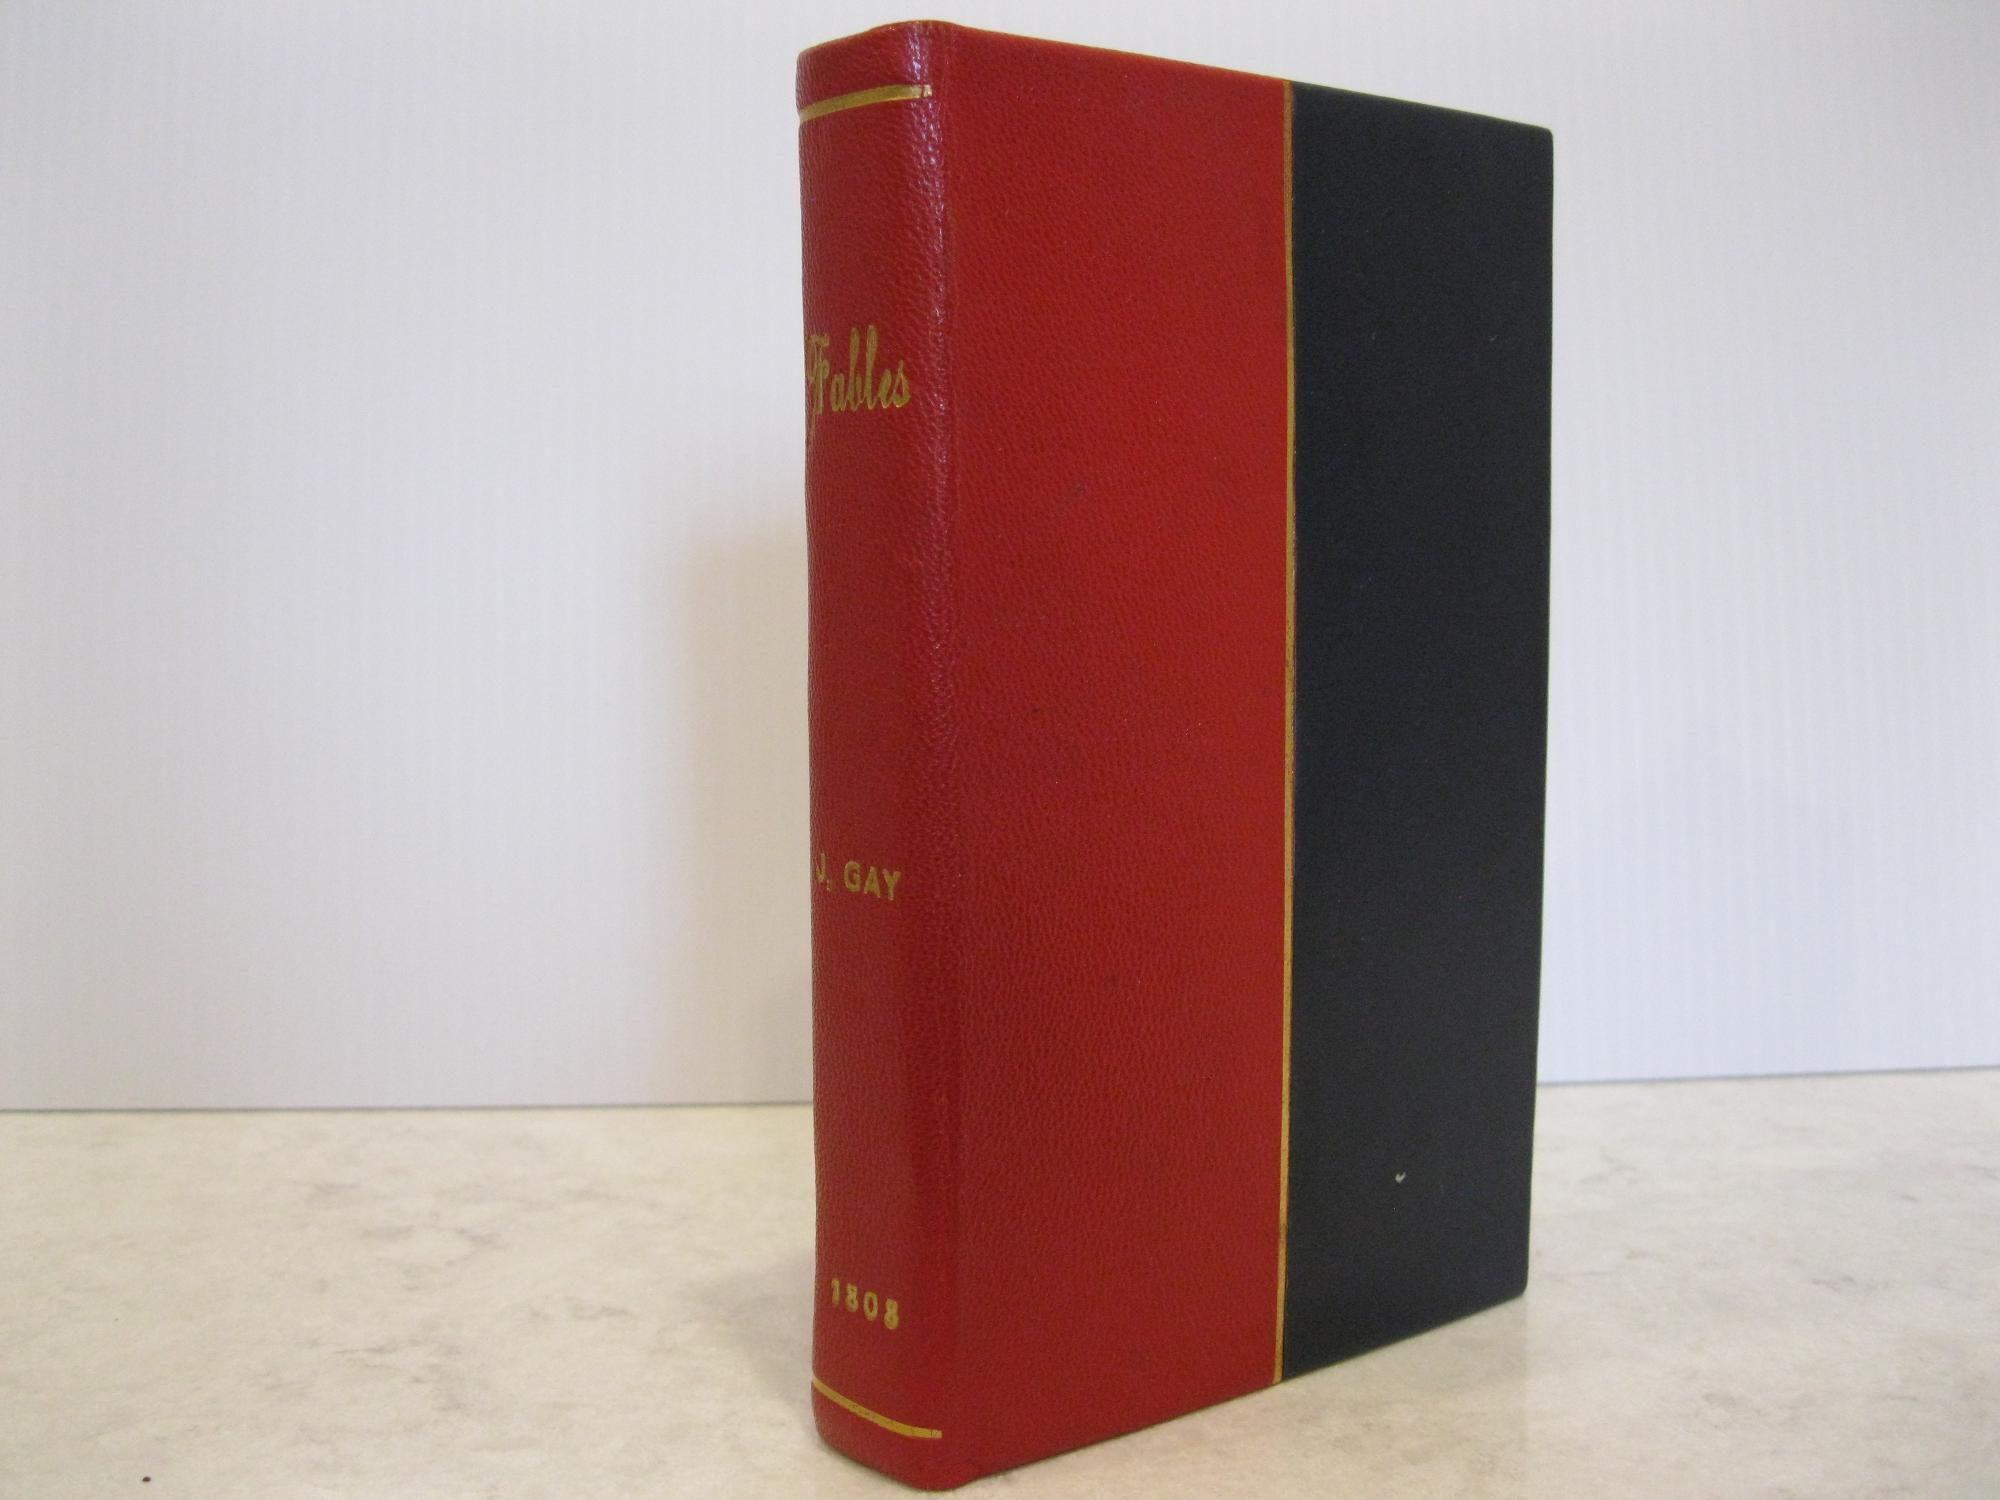 FABLES_BY_JOHN_GAY_WITH_THE_LIFE_OF_THEIR_AUTHOR_EMBELLISHED_WITH_SEVENTY_ELEGANT_ENGRAVINGS_IN_ONE_VOLUME_COMPLETE_GAY,_JOHN_[Very_Good]_[Hardcover]